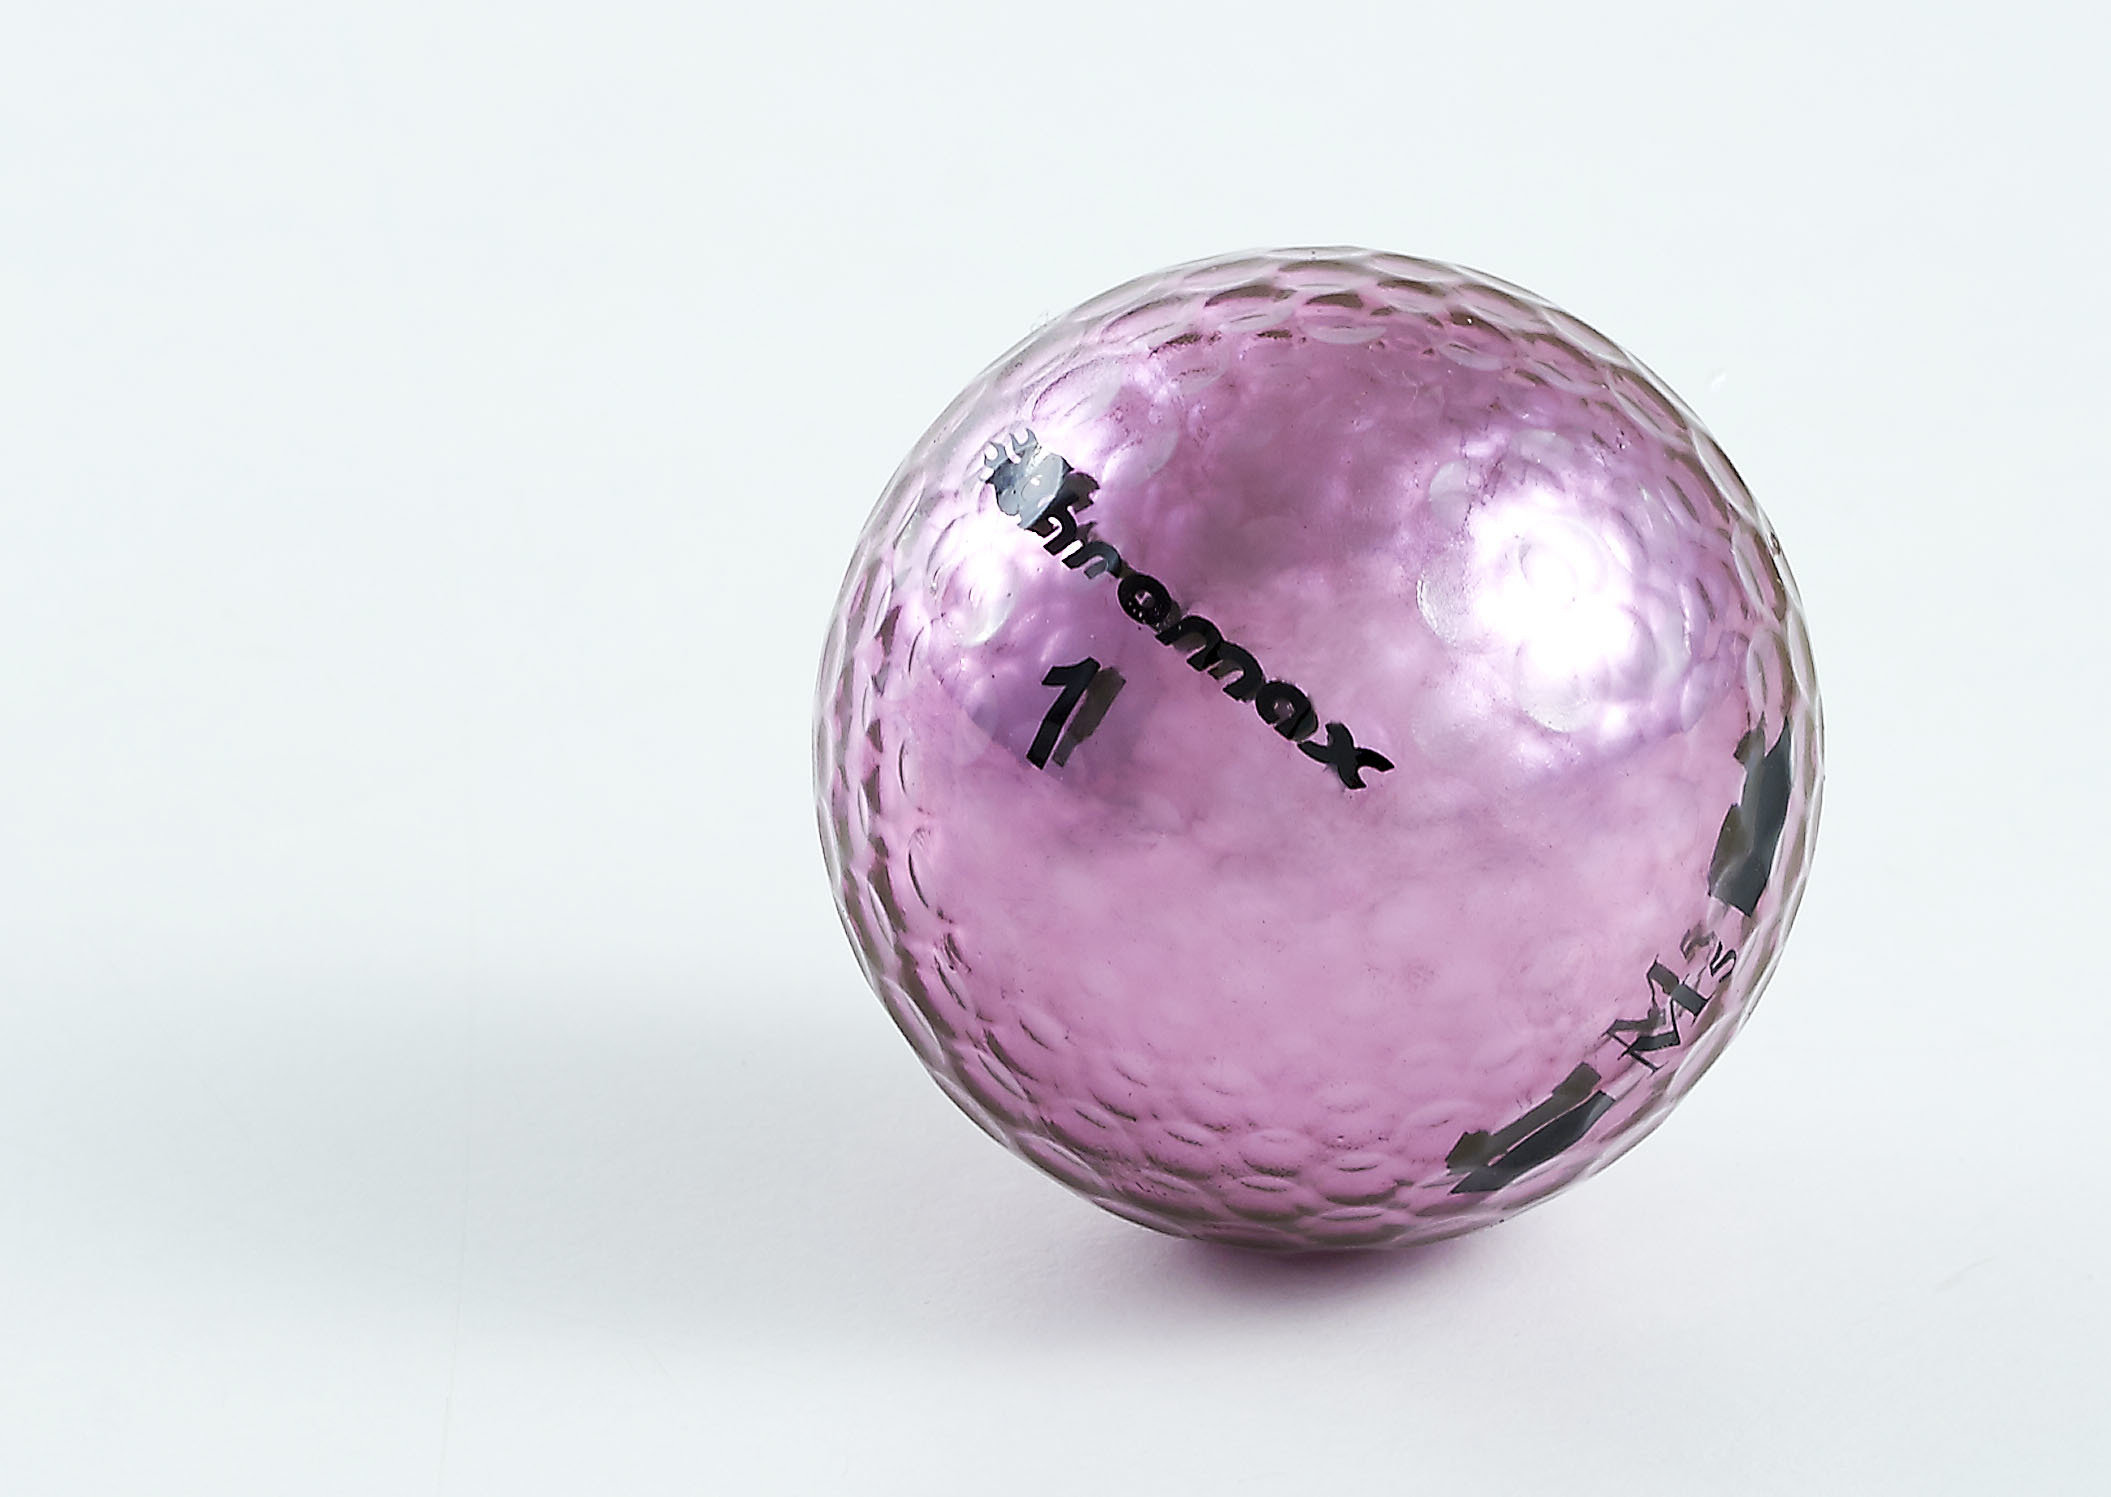 Chromax purple golf ball M5 single